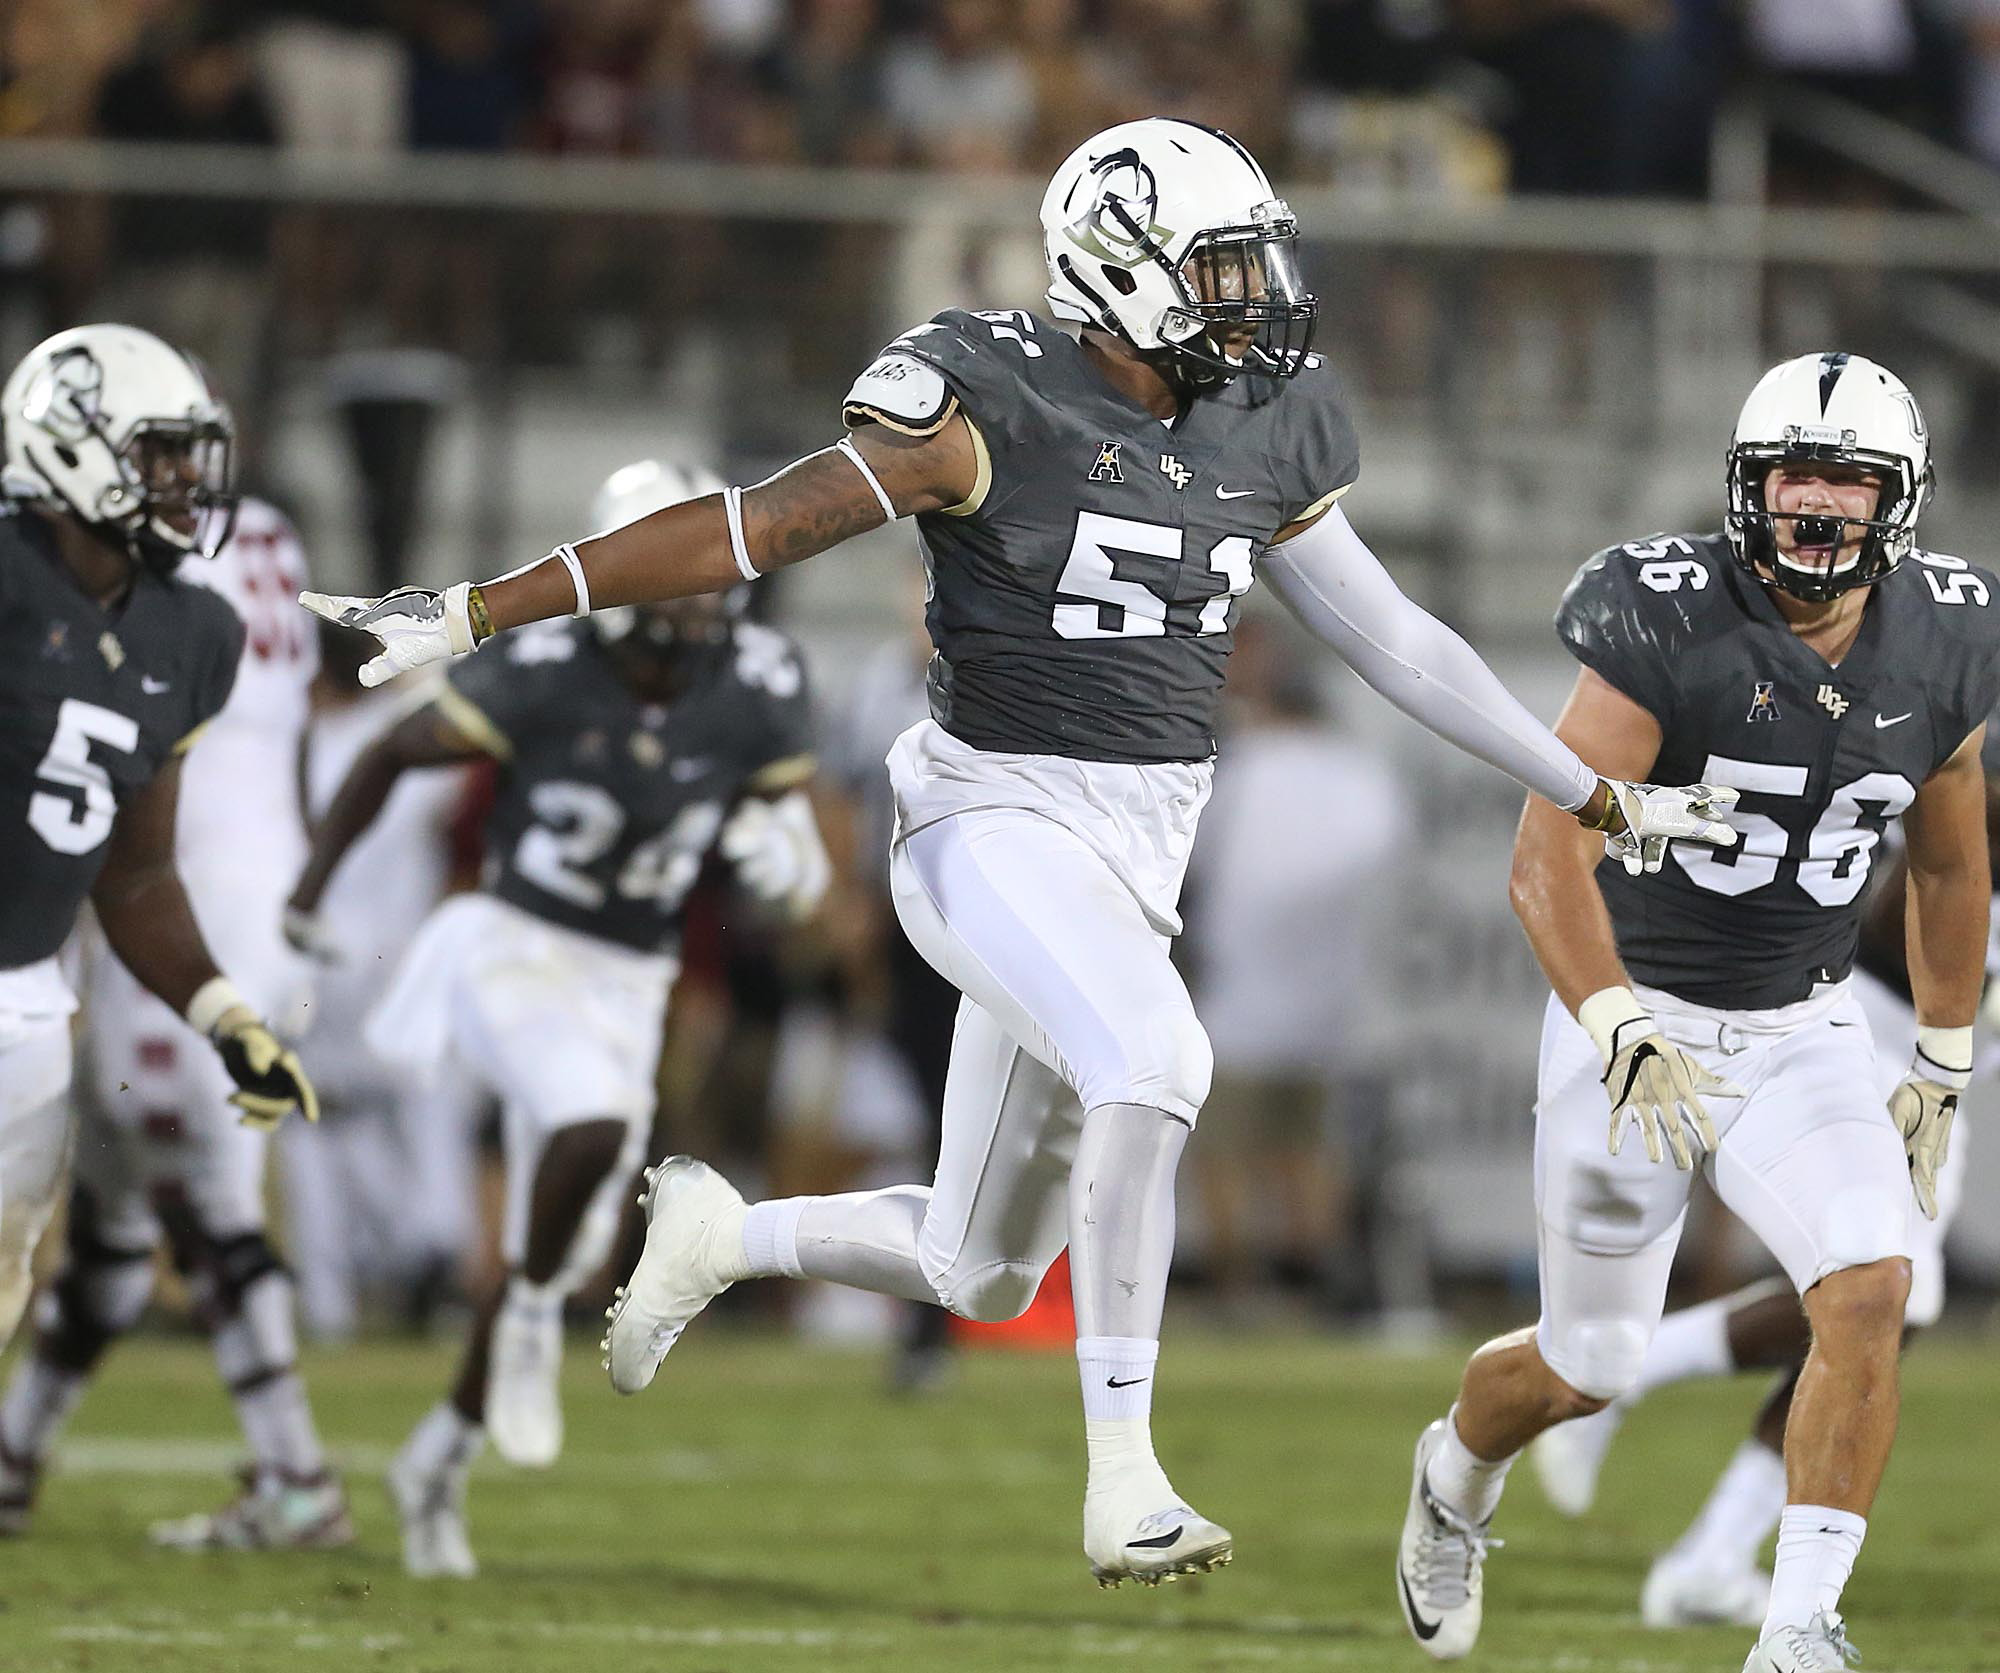 Central Florida linebacker Errol Clarke (51) celebrates after a stop against Temple during an NCAA college football game in Orlando, Fla., on Saturday, Oct. 15, 2016. (Stephen M. Dowell/AP)